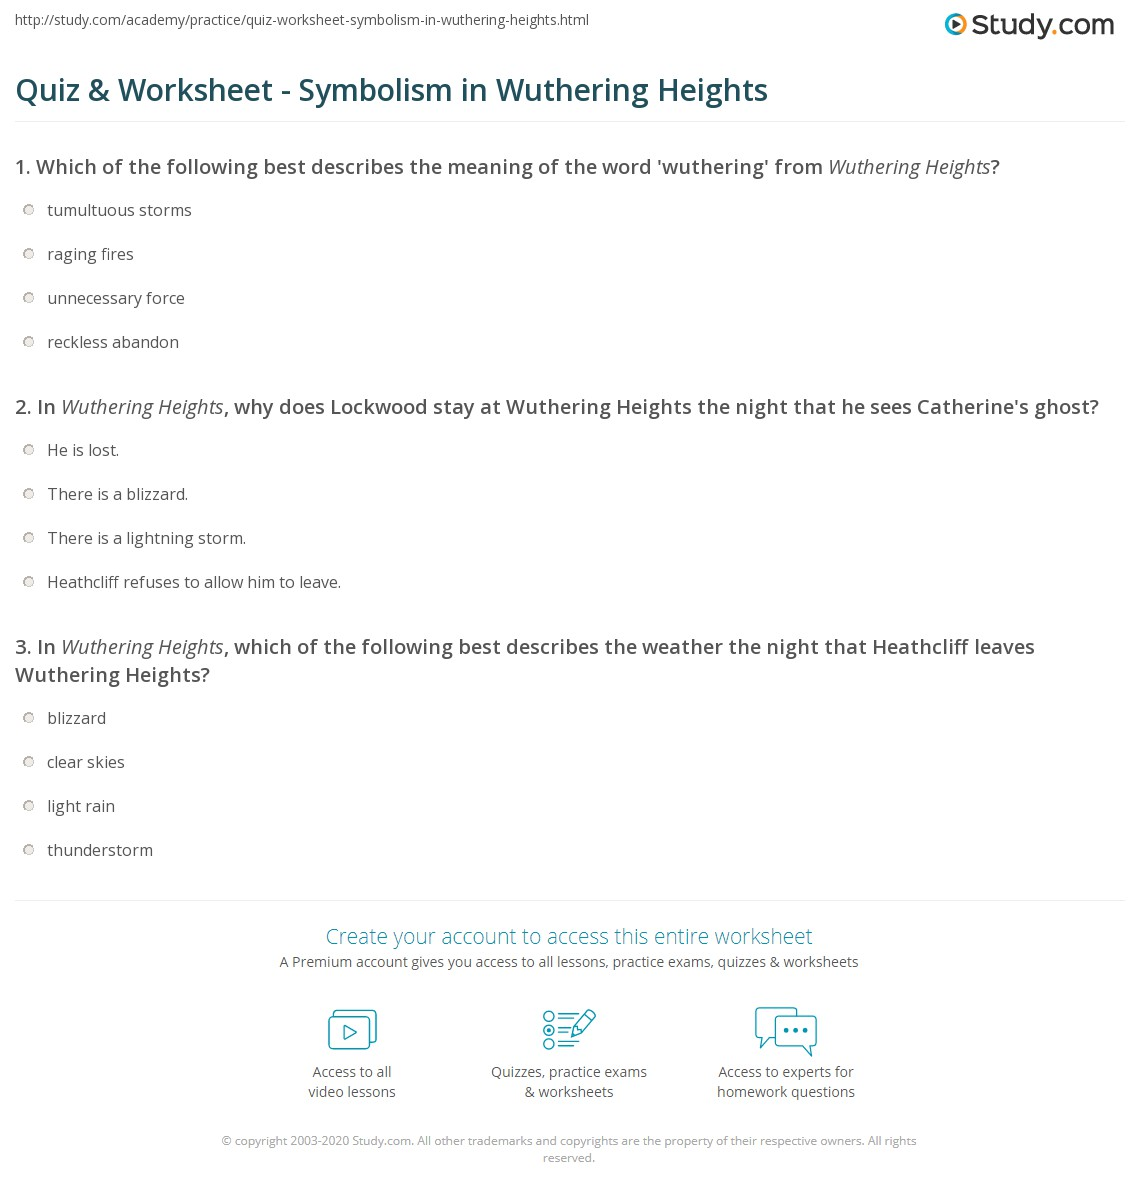 Quiz Worksheet Symbolism In Wuthering Heights Study